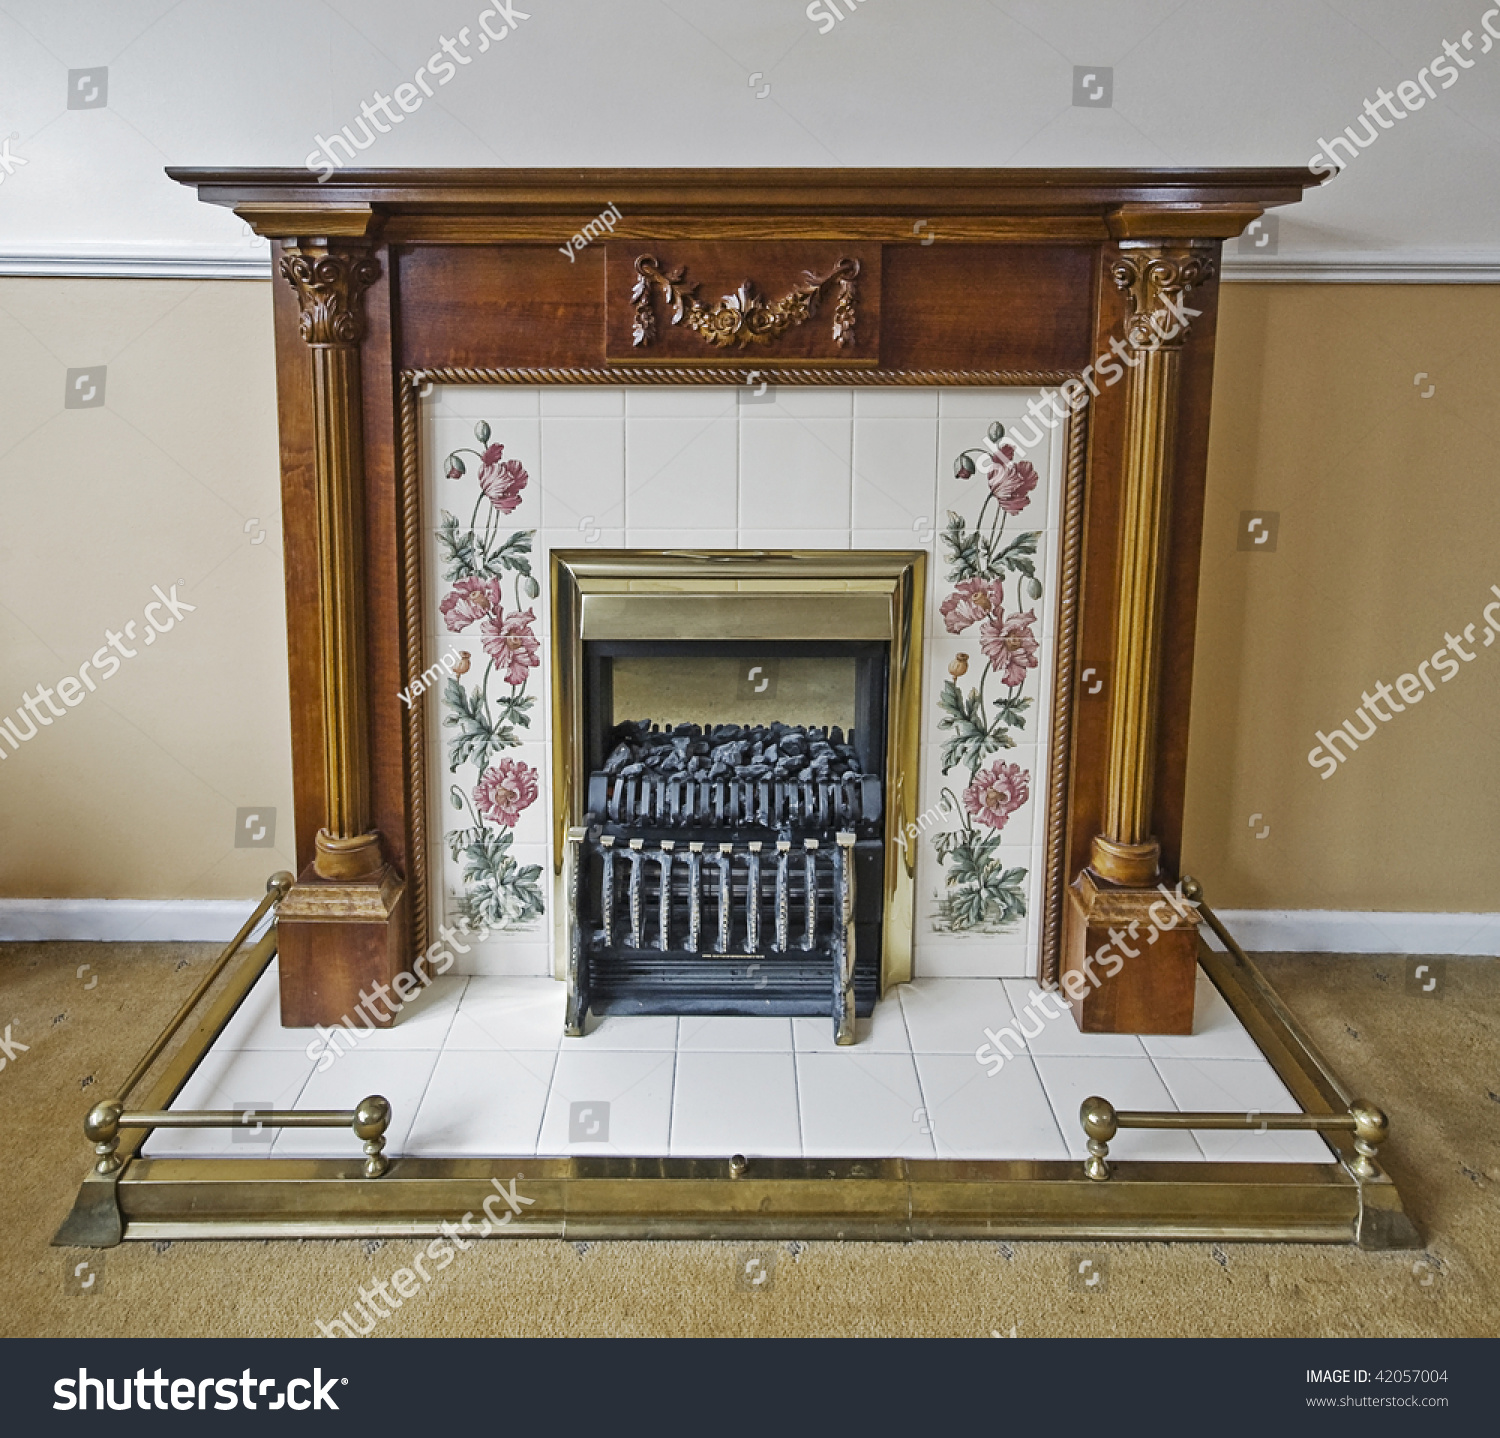 Fireplace Carved Wooden Frame Painted Flower Stock Photo 42057004 Shutterstock